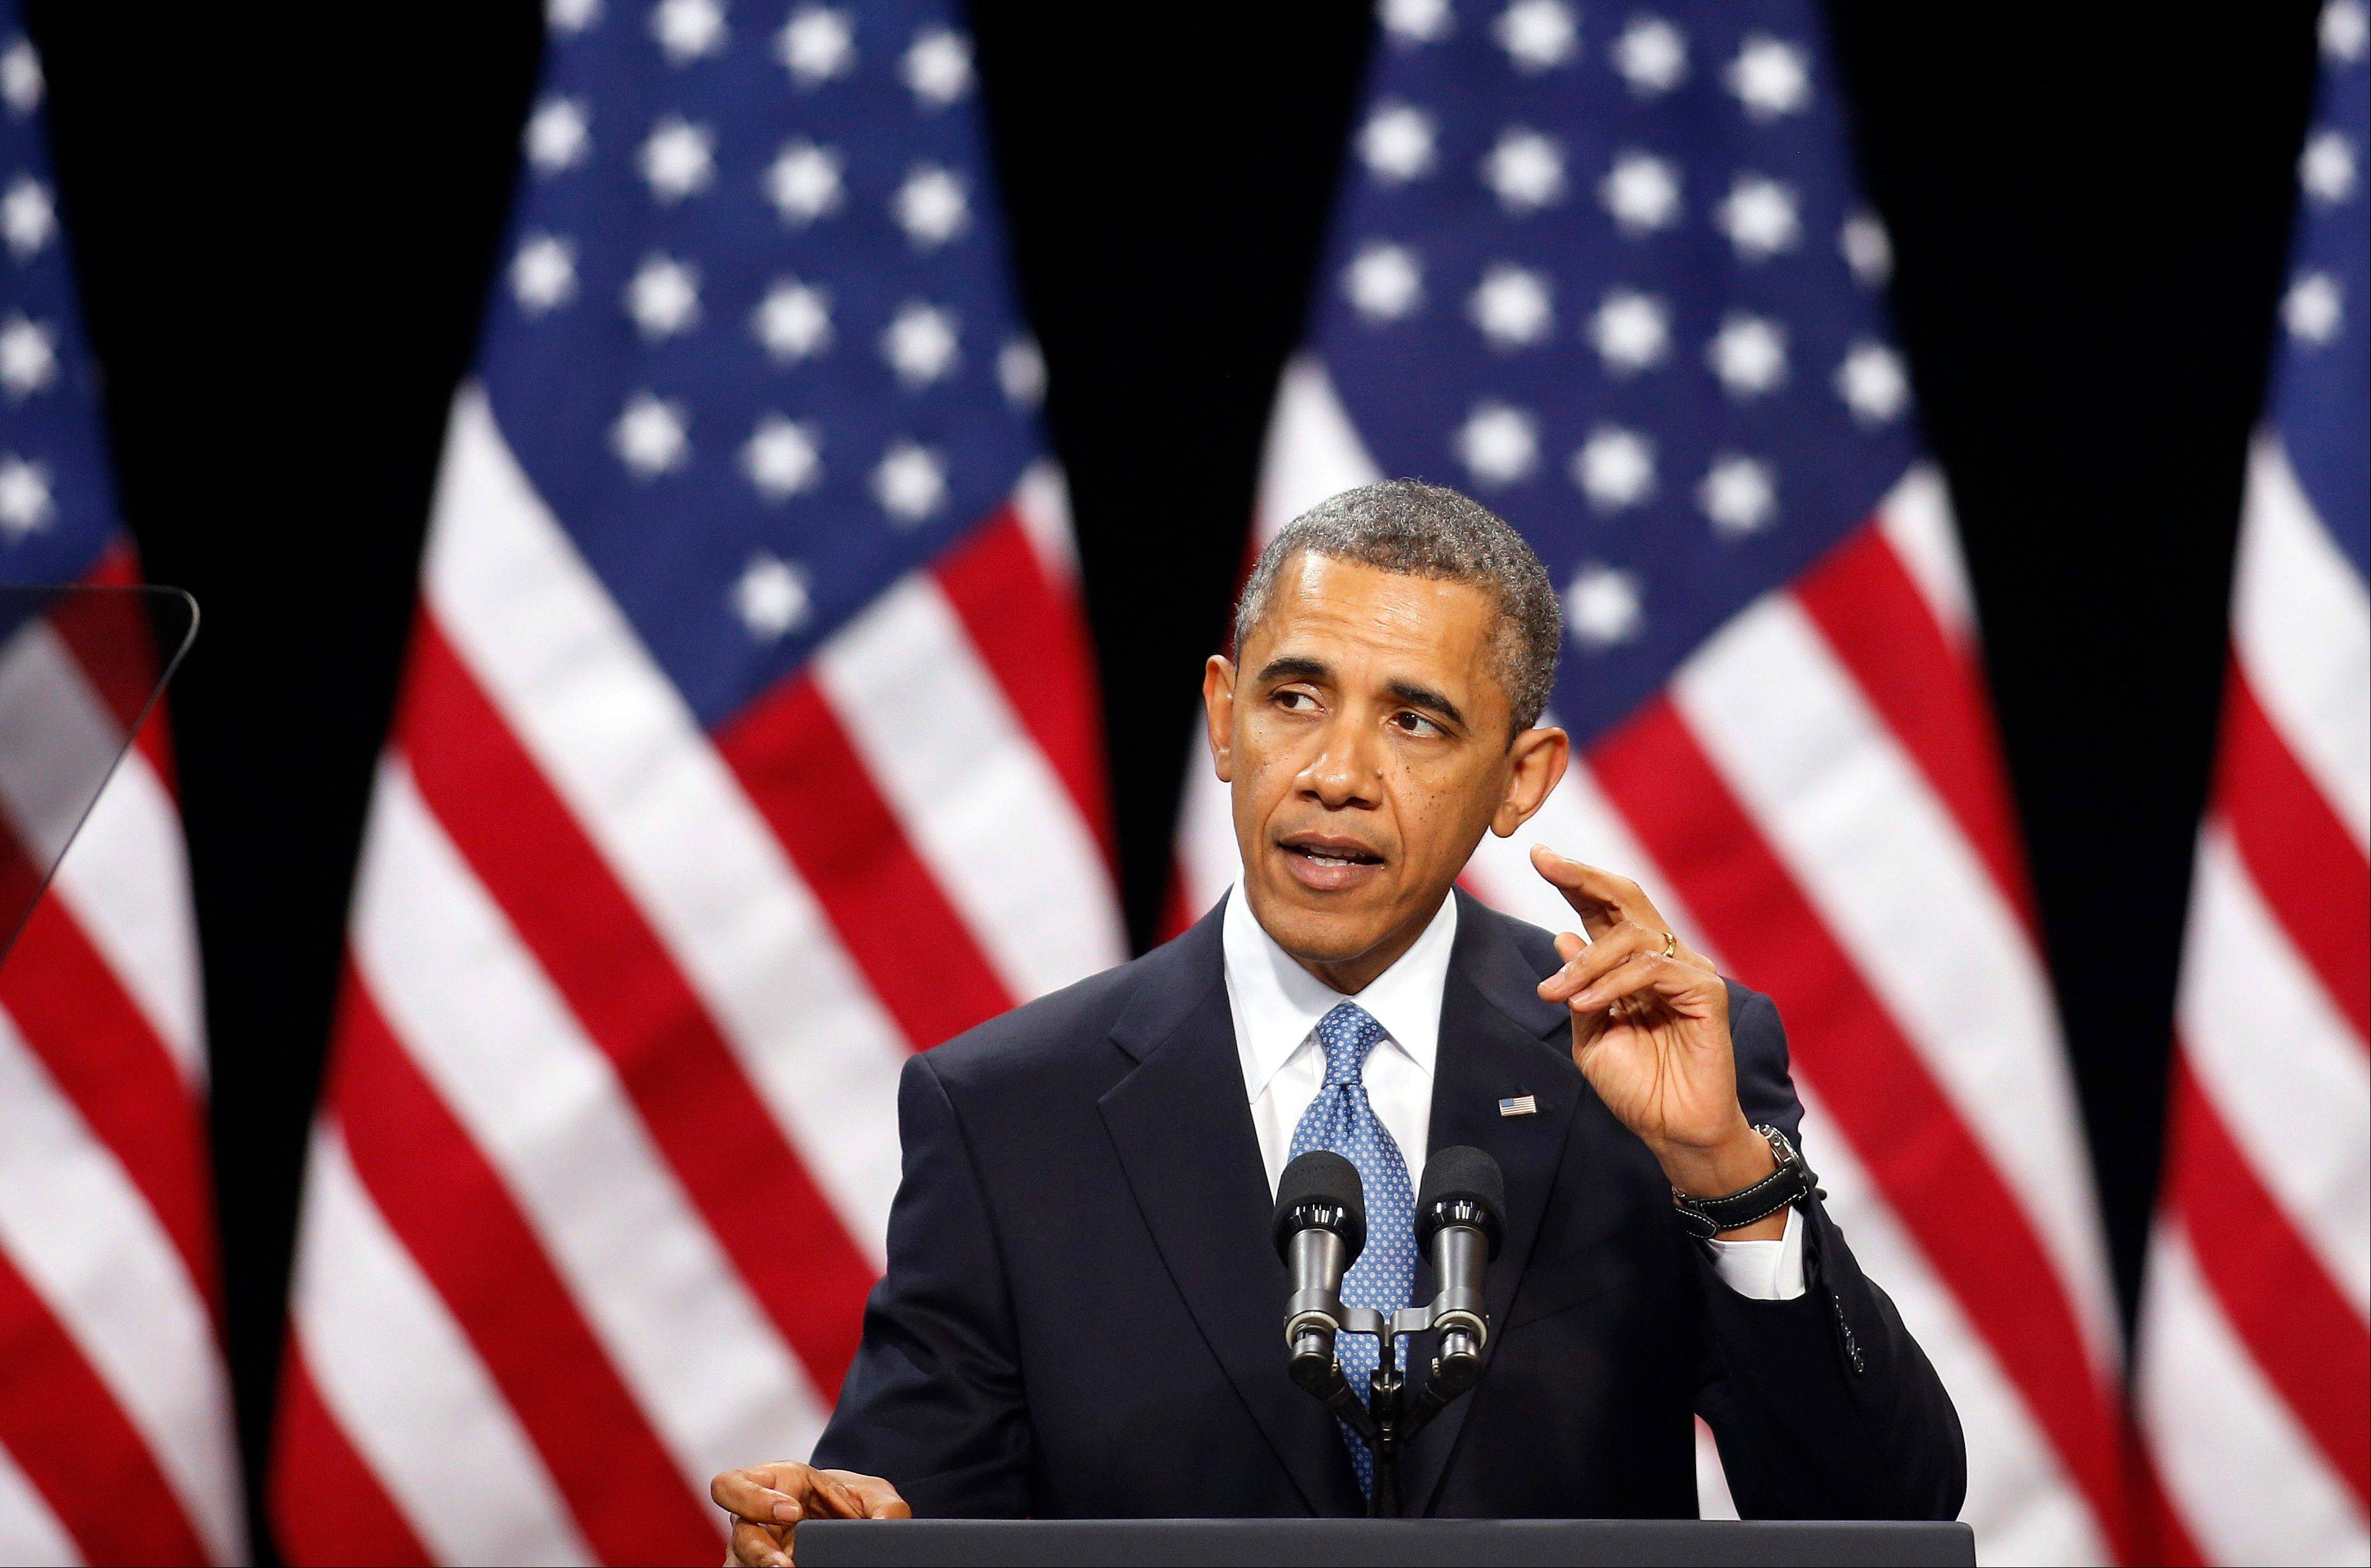 President Barack Obama speaks about immigration reform at a Las Vegas high school. The White House is downplaying its draft immigration proposal as merely a backup plan if lawmakers don't come up with an overhaul of their own. It won't be necessary, Republican and Democratic lawmakers alike are telling the Obama administration.